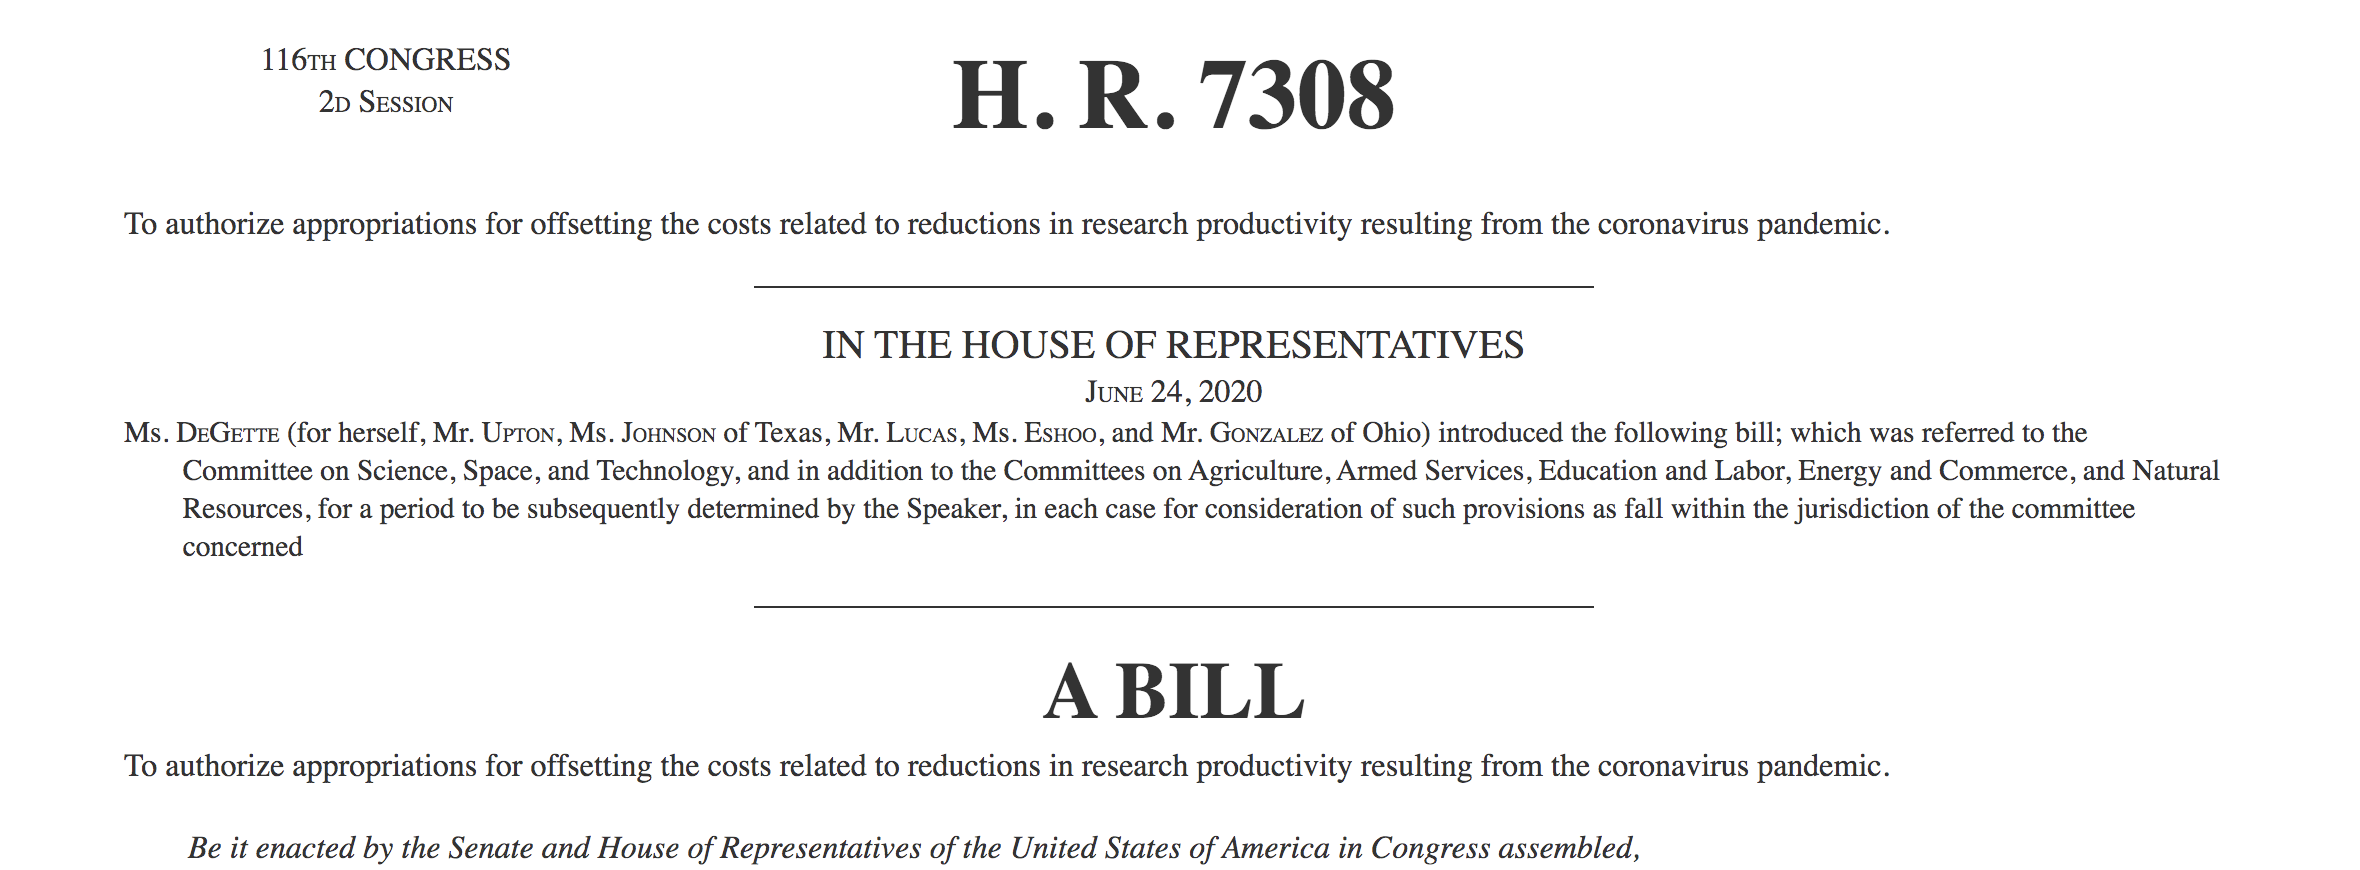 RISE Act authorization bill (H.R. 7308, S. 4286)